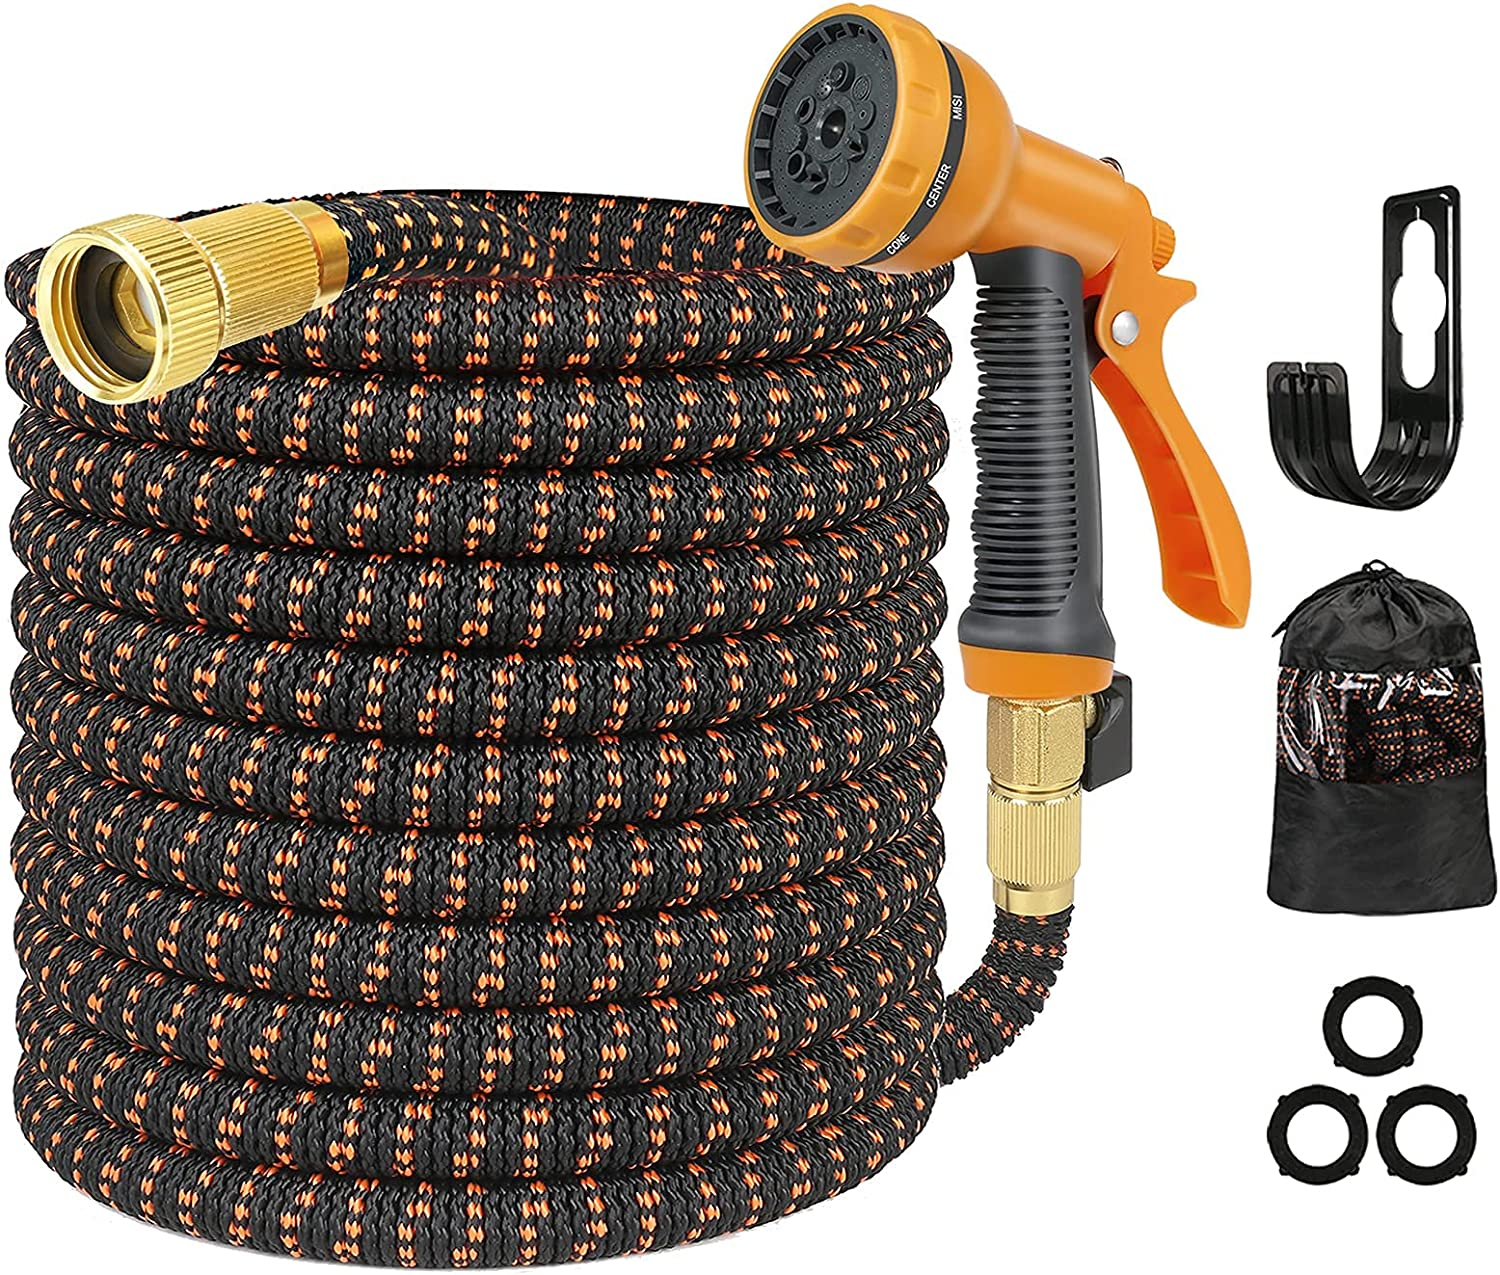 Garden Water Hose 50ft - Lightweight and Kink Free Expandable Garden Hose Pipe with 10-Function Spray Gun and 3/4 Inch Solid Brass Fittings